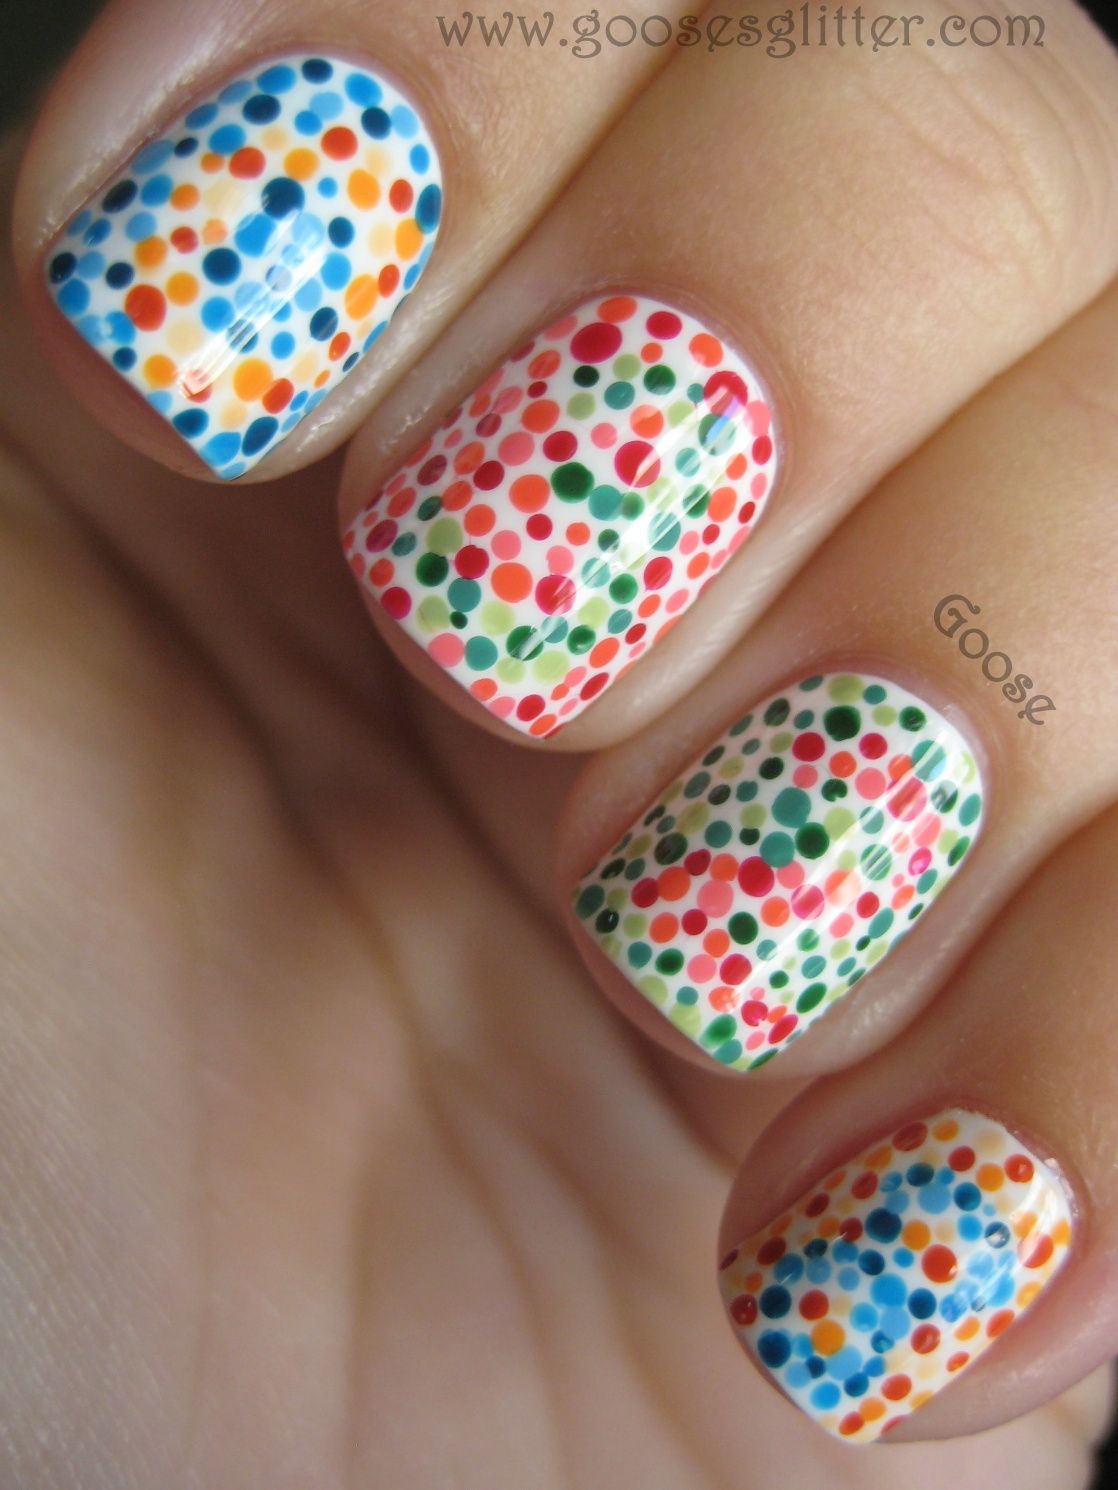 Awesome color blind test mani using dotting tools :)